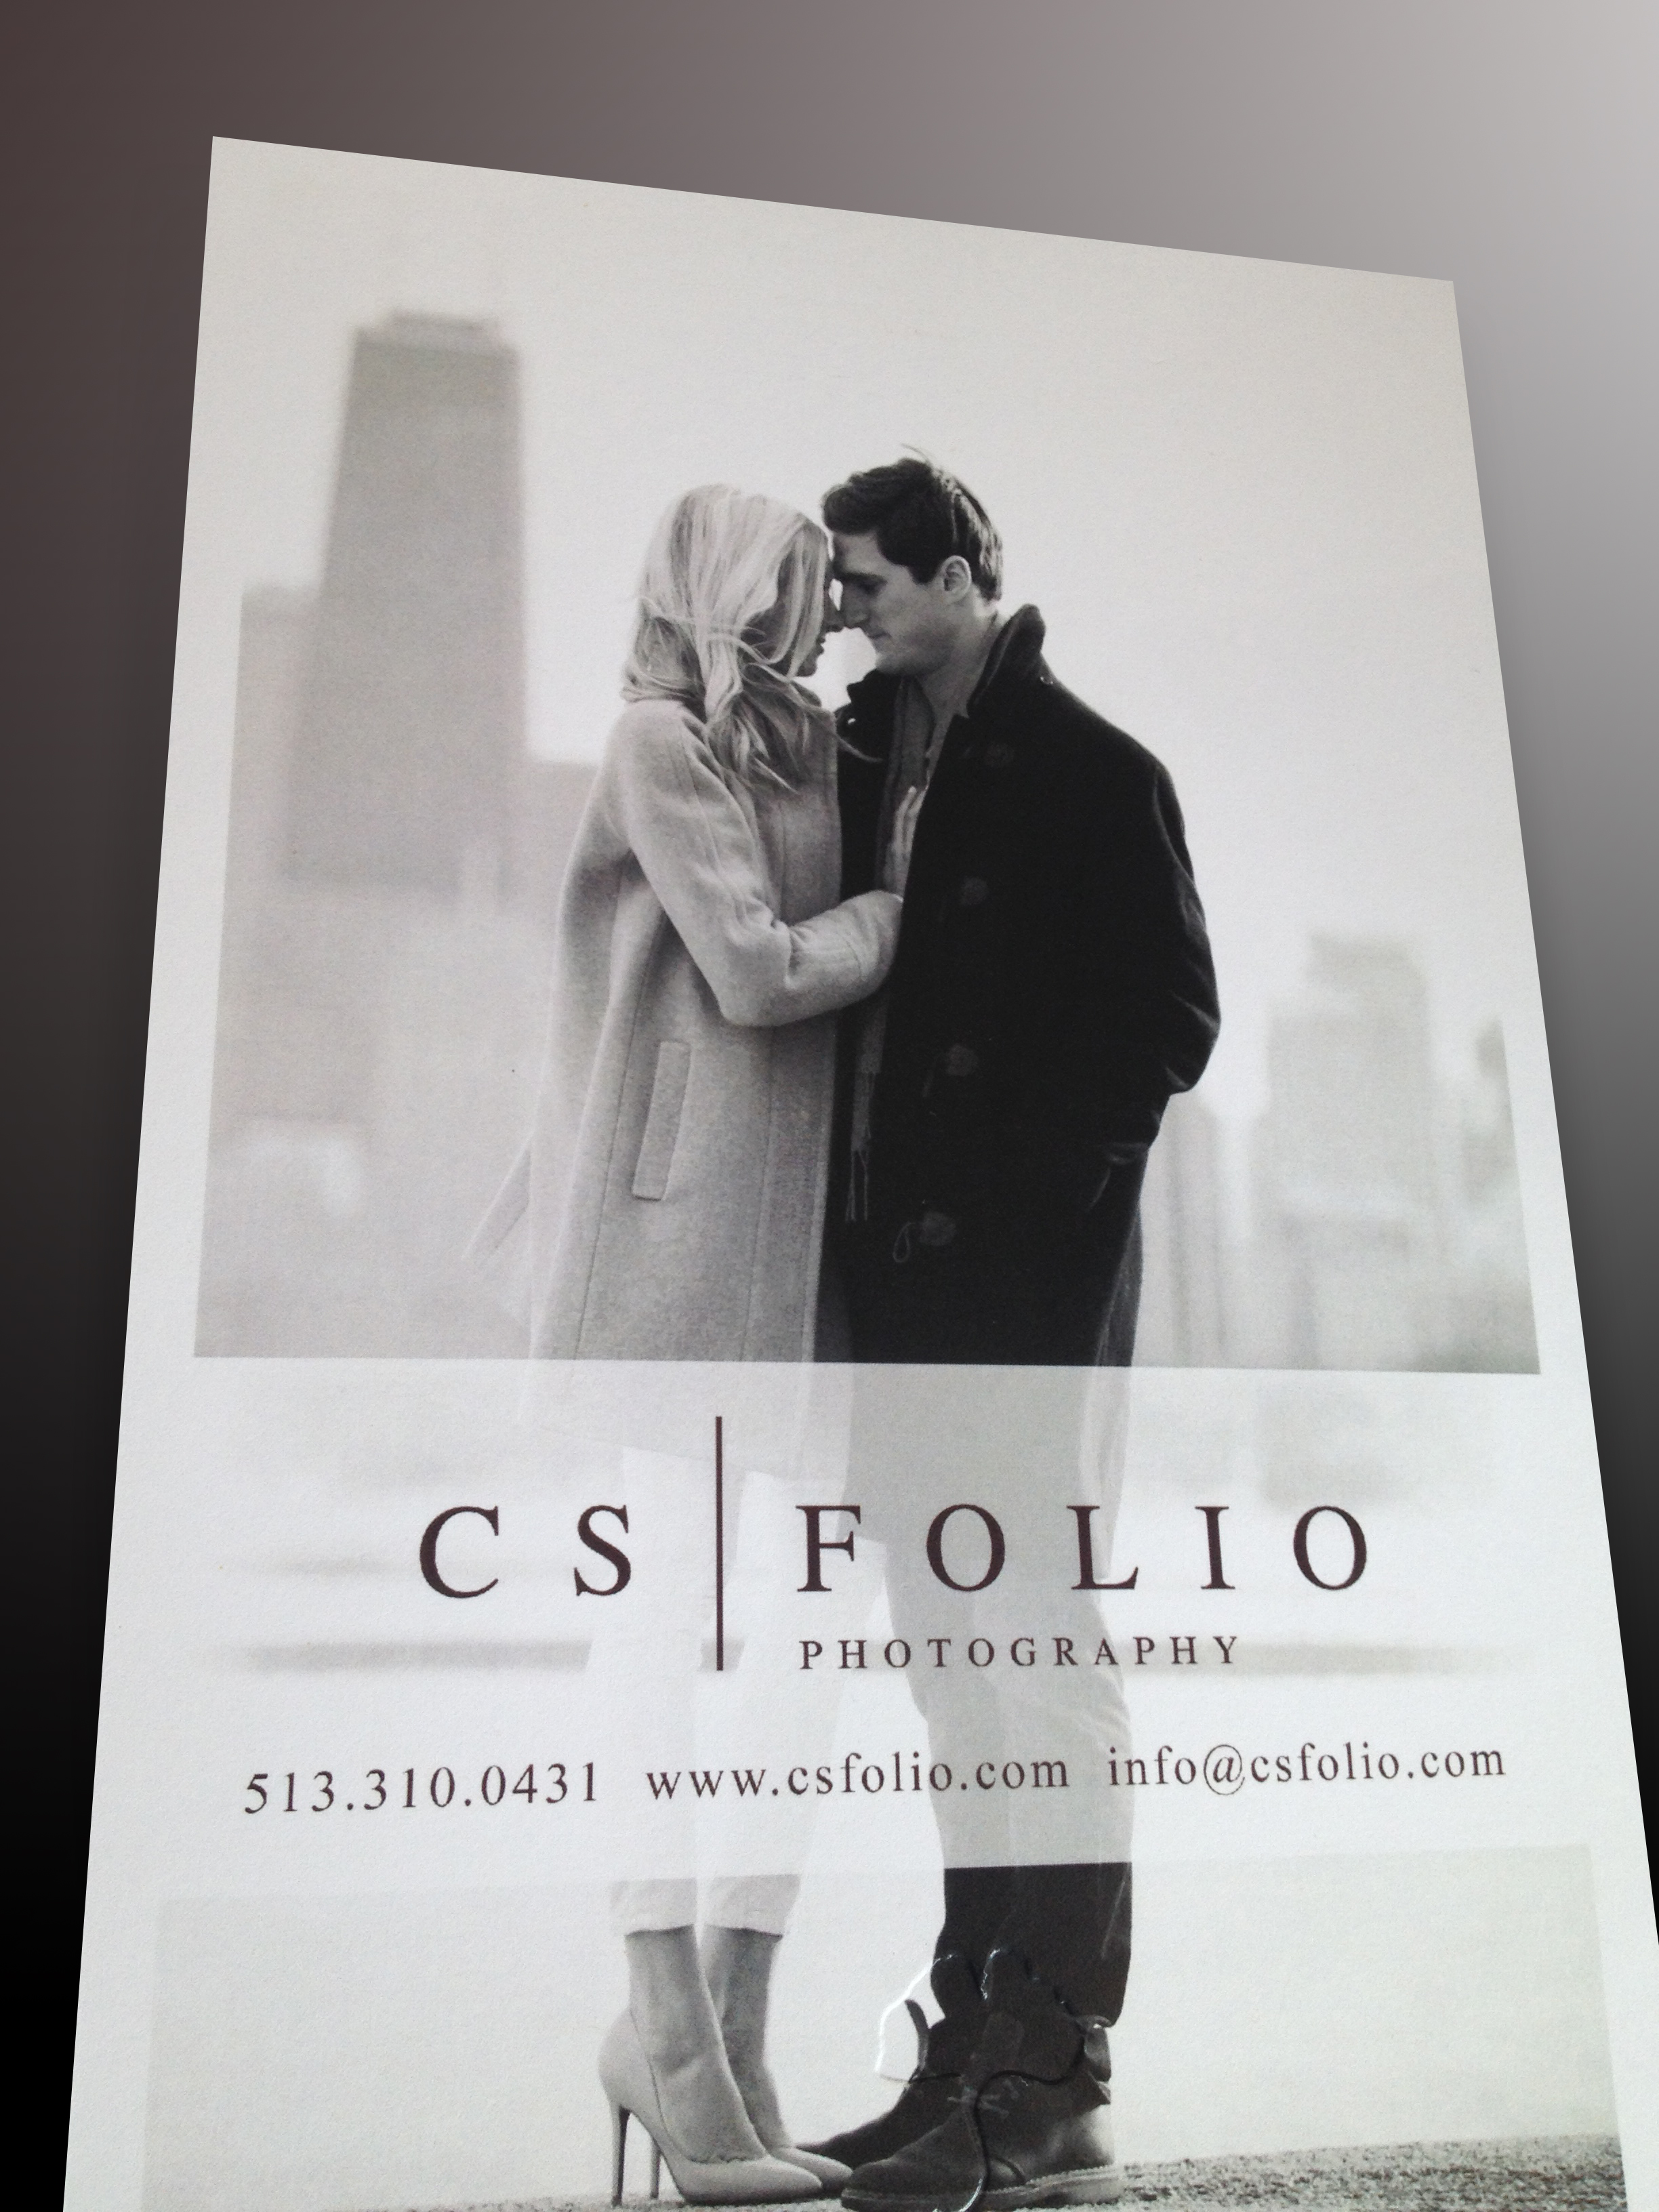 printing-csfolio-photography-weddings-engagement-business-black-white-couple-.JPG